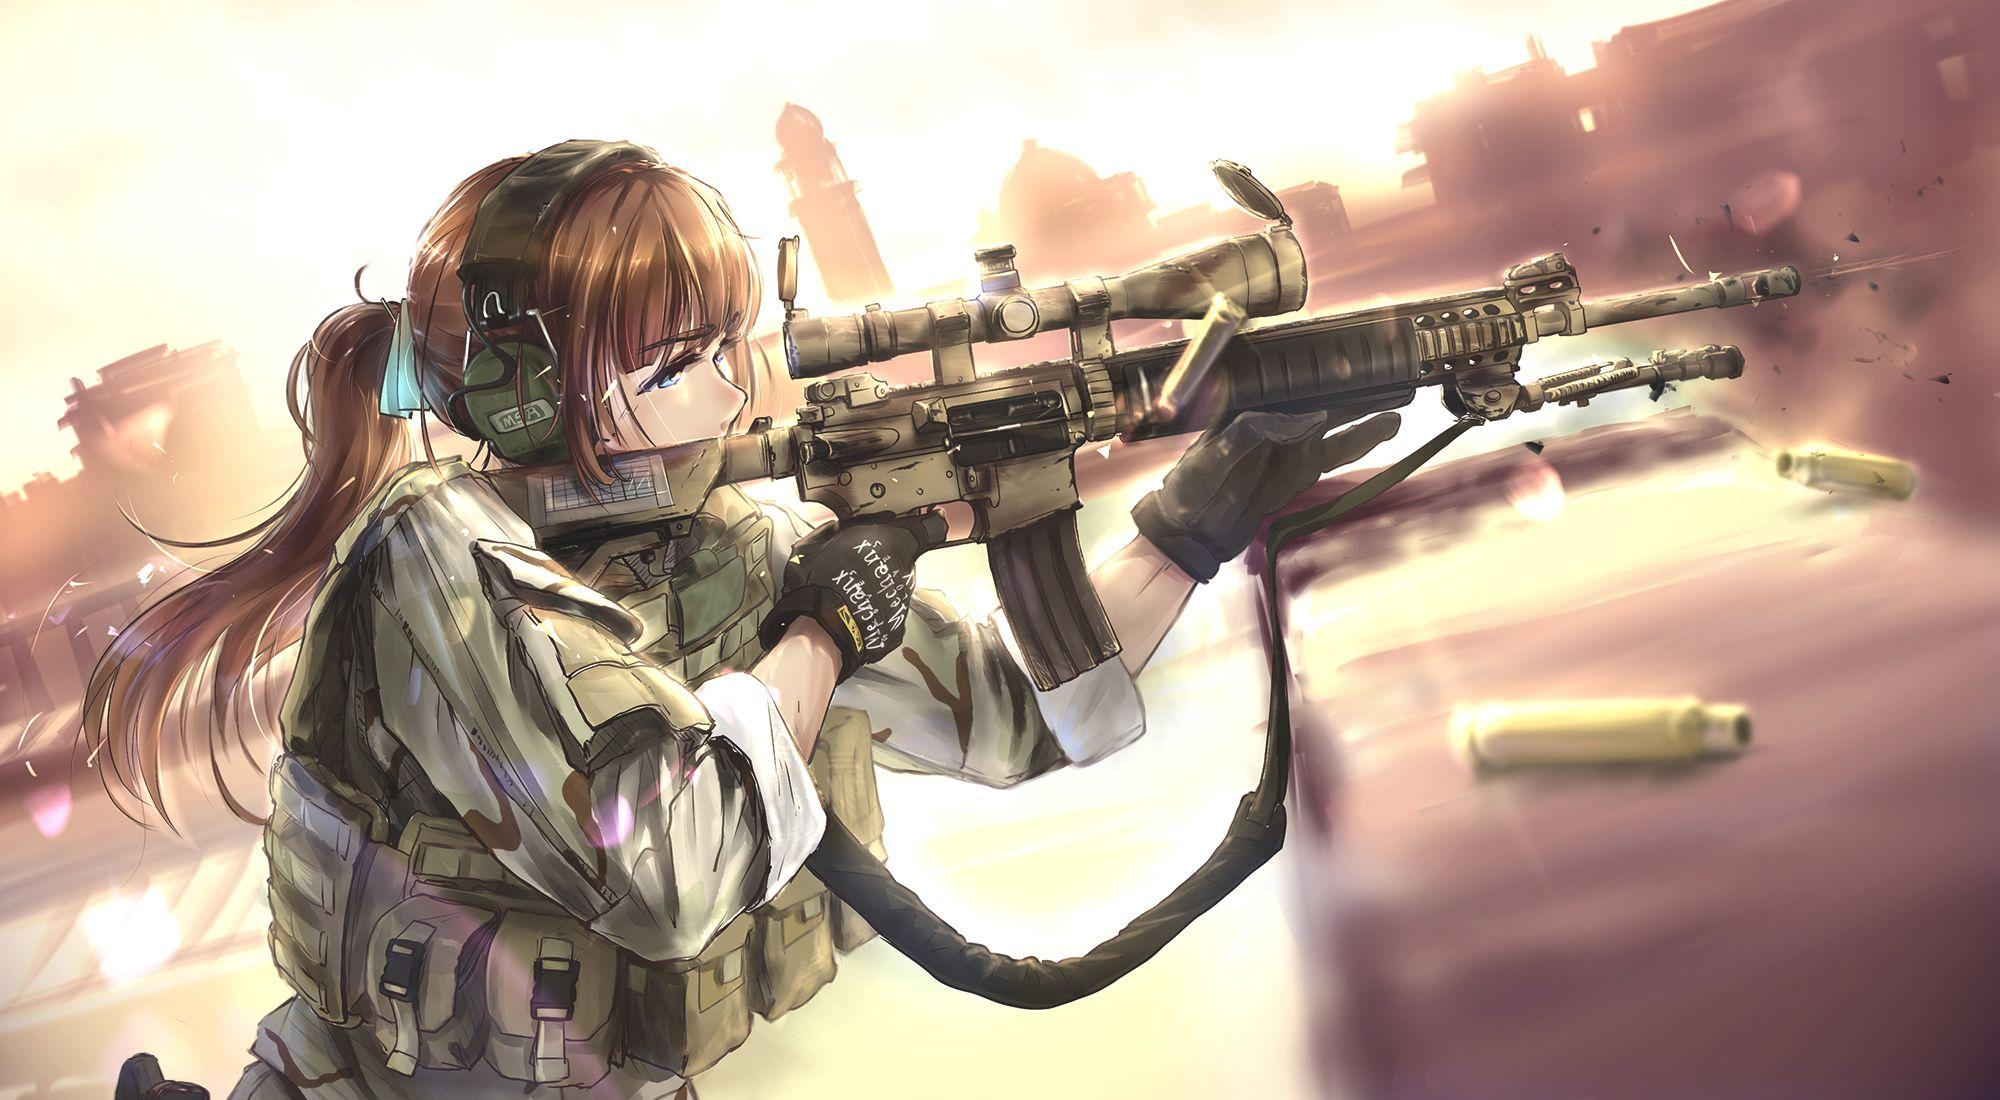 Anime Soldier Wallpapers - Wallpaper Cave